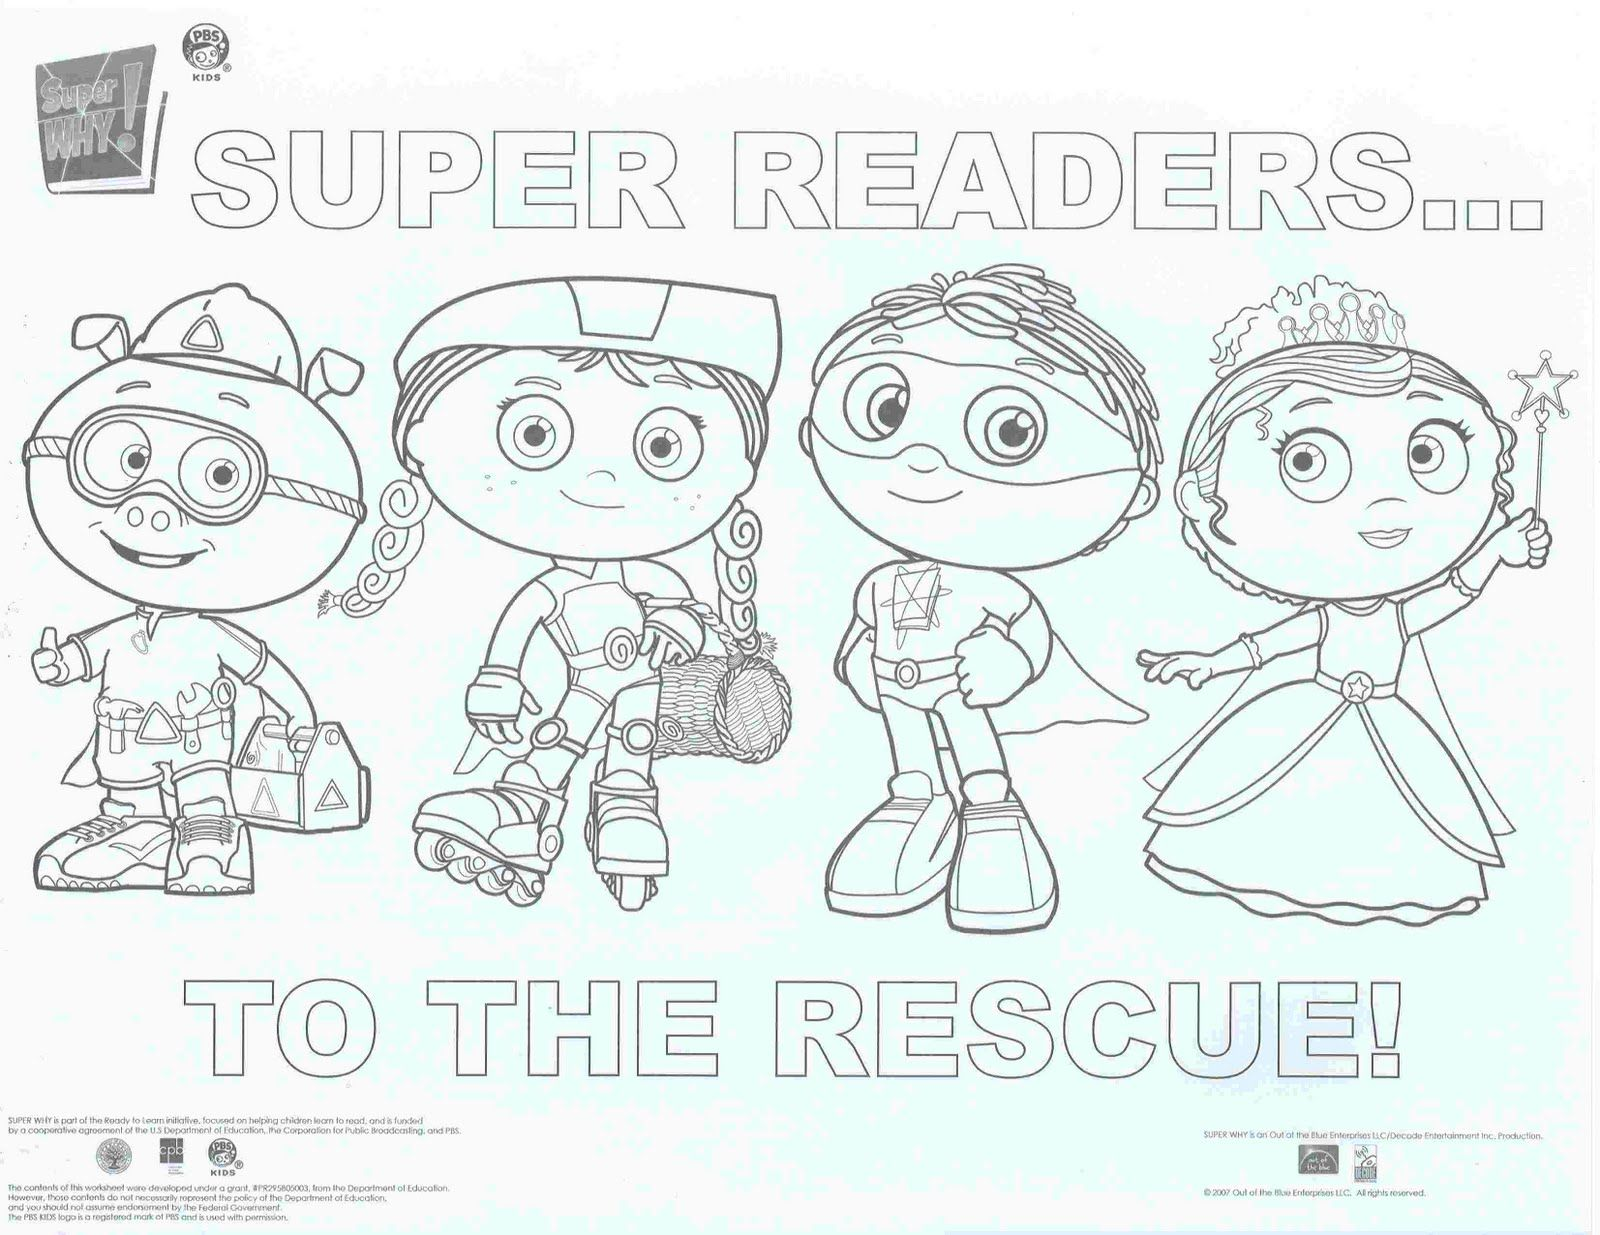 Adult Beauty Super Y Coloring Pages Images top 1000 images about super why on pinterest coloring book pages and for kids images